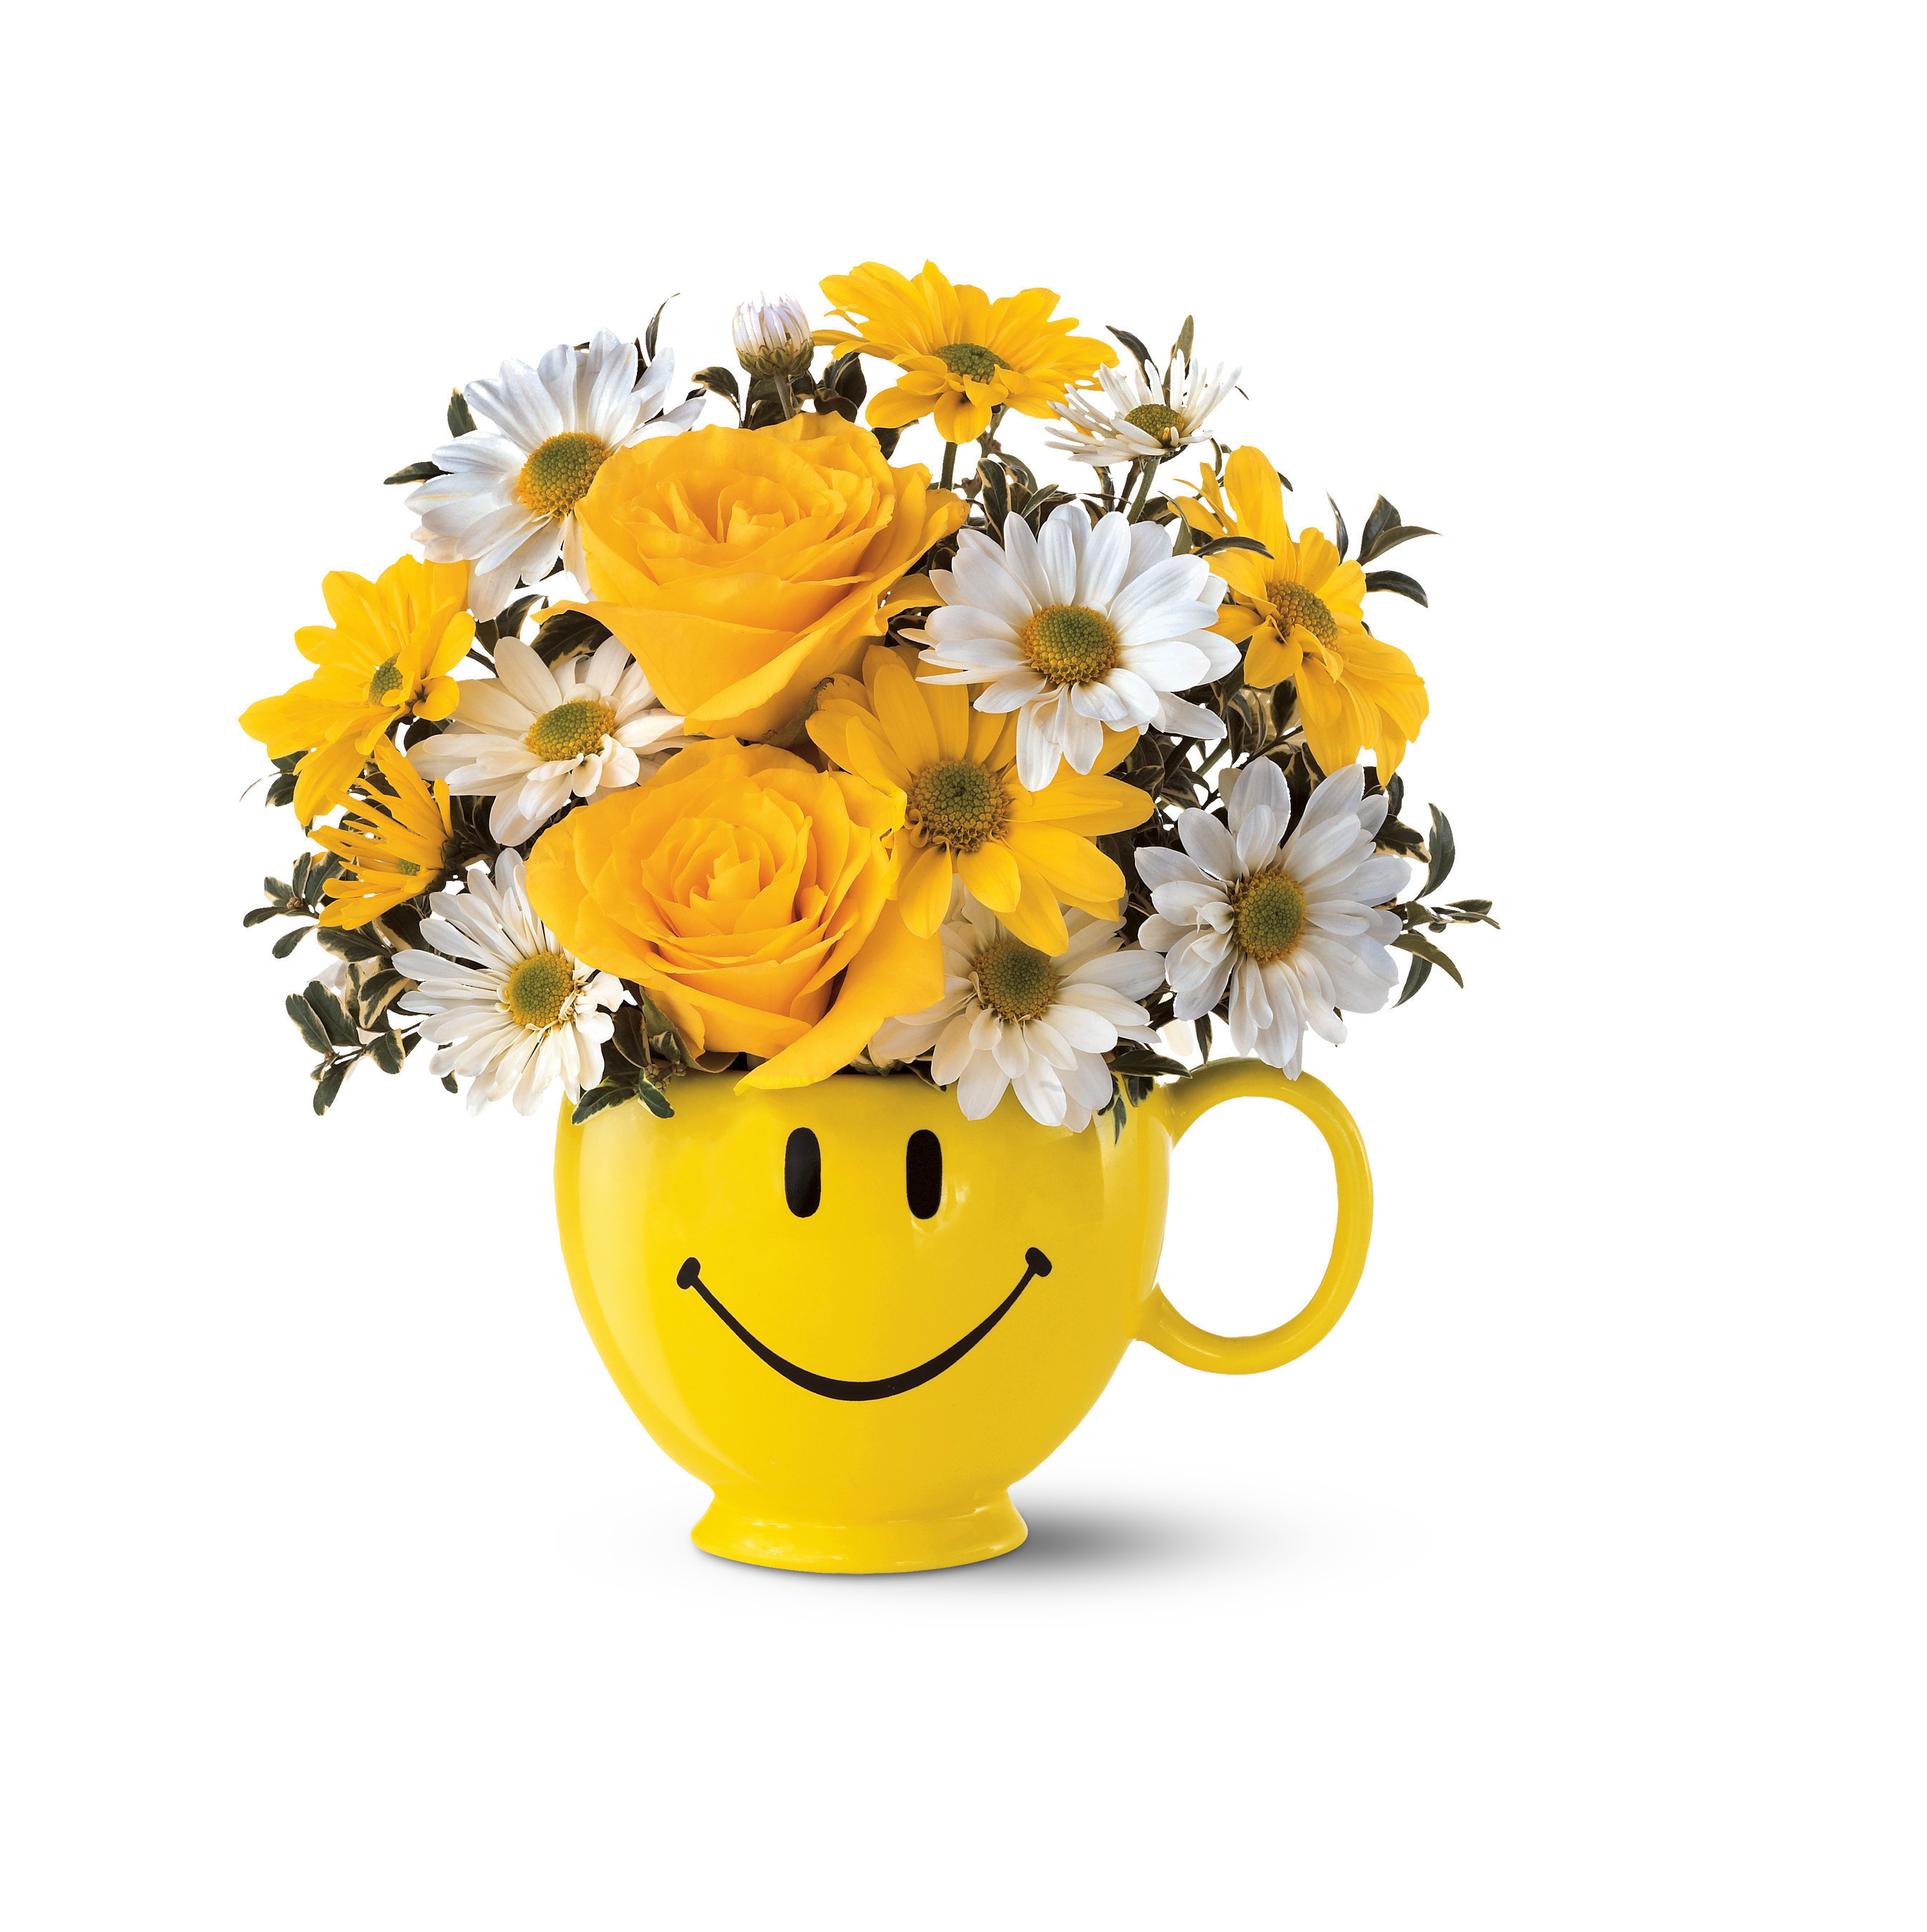 Teleflora's Be Happy Bouquet Honors Teleflora's 15th Annual Make Someone Smile(r) Week. (Photo courtesy of Teleflora.)